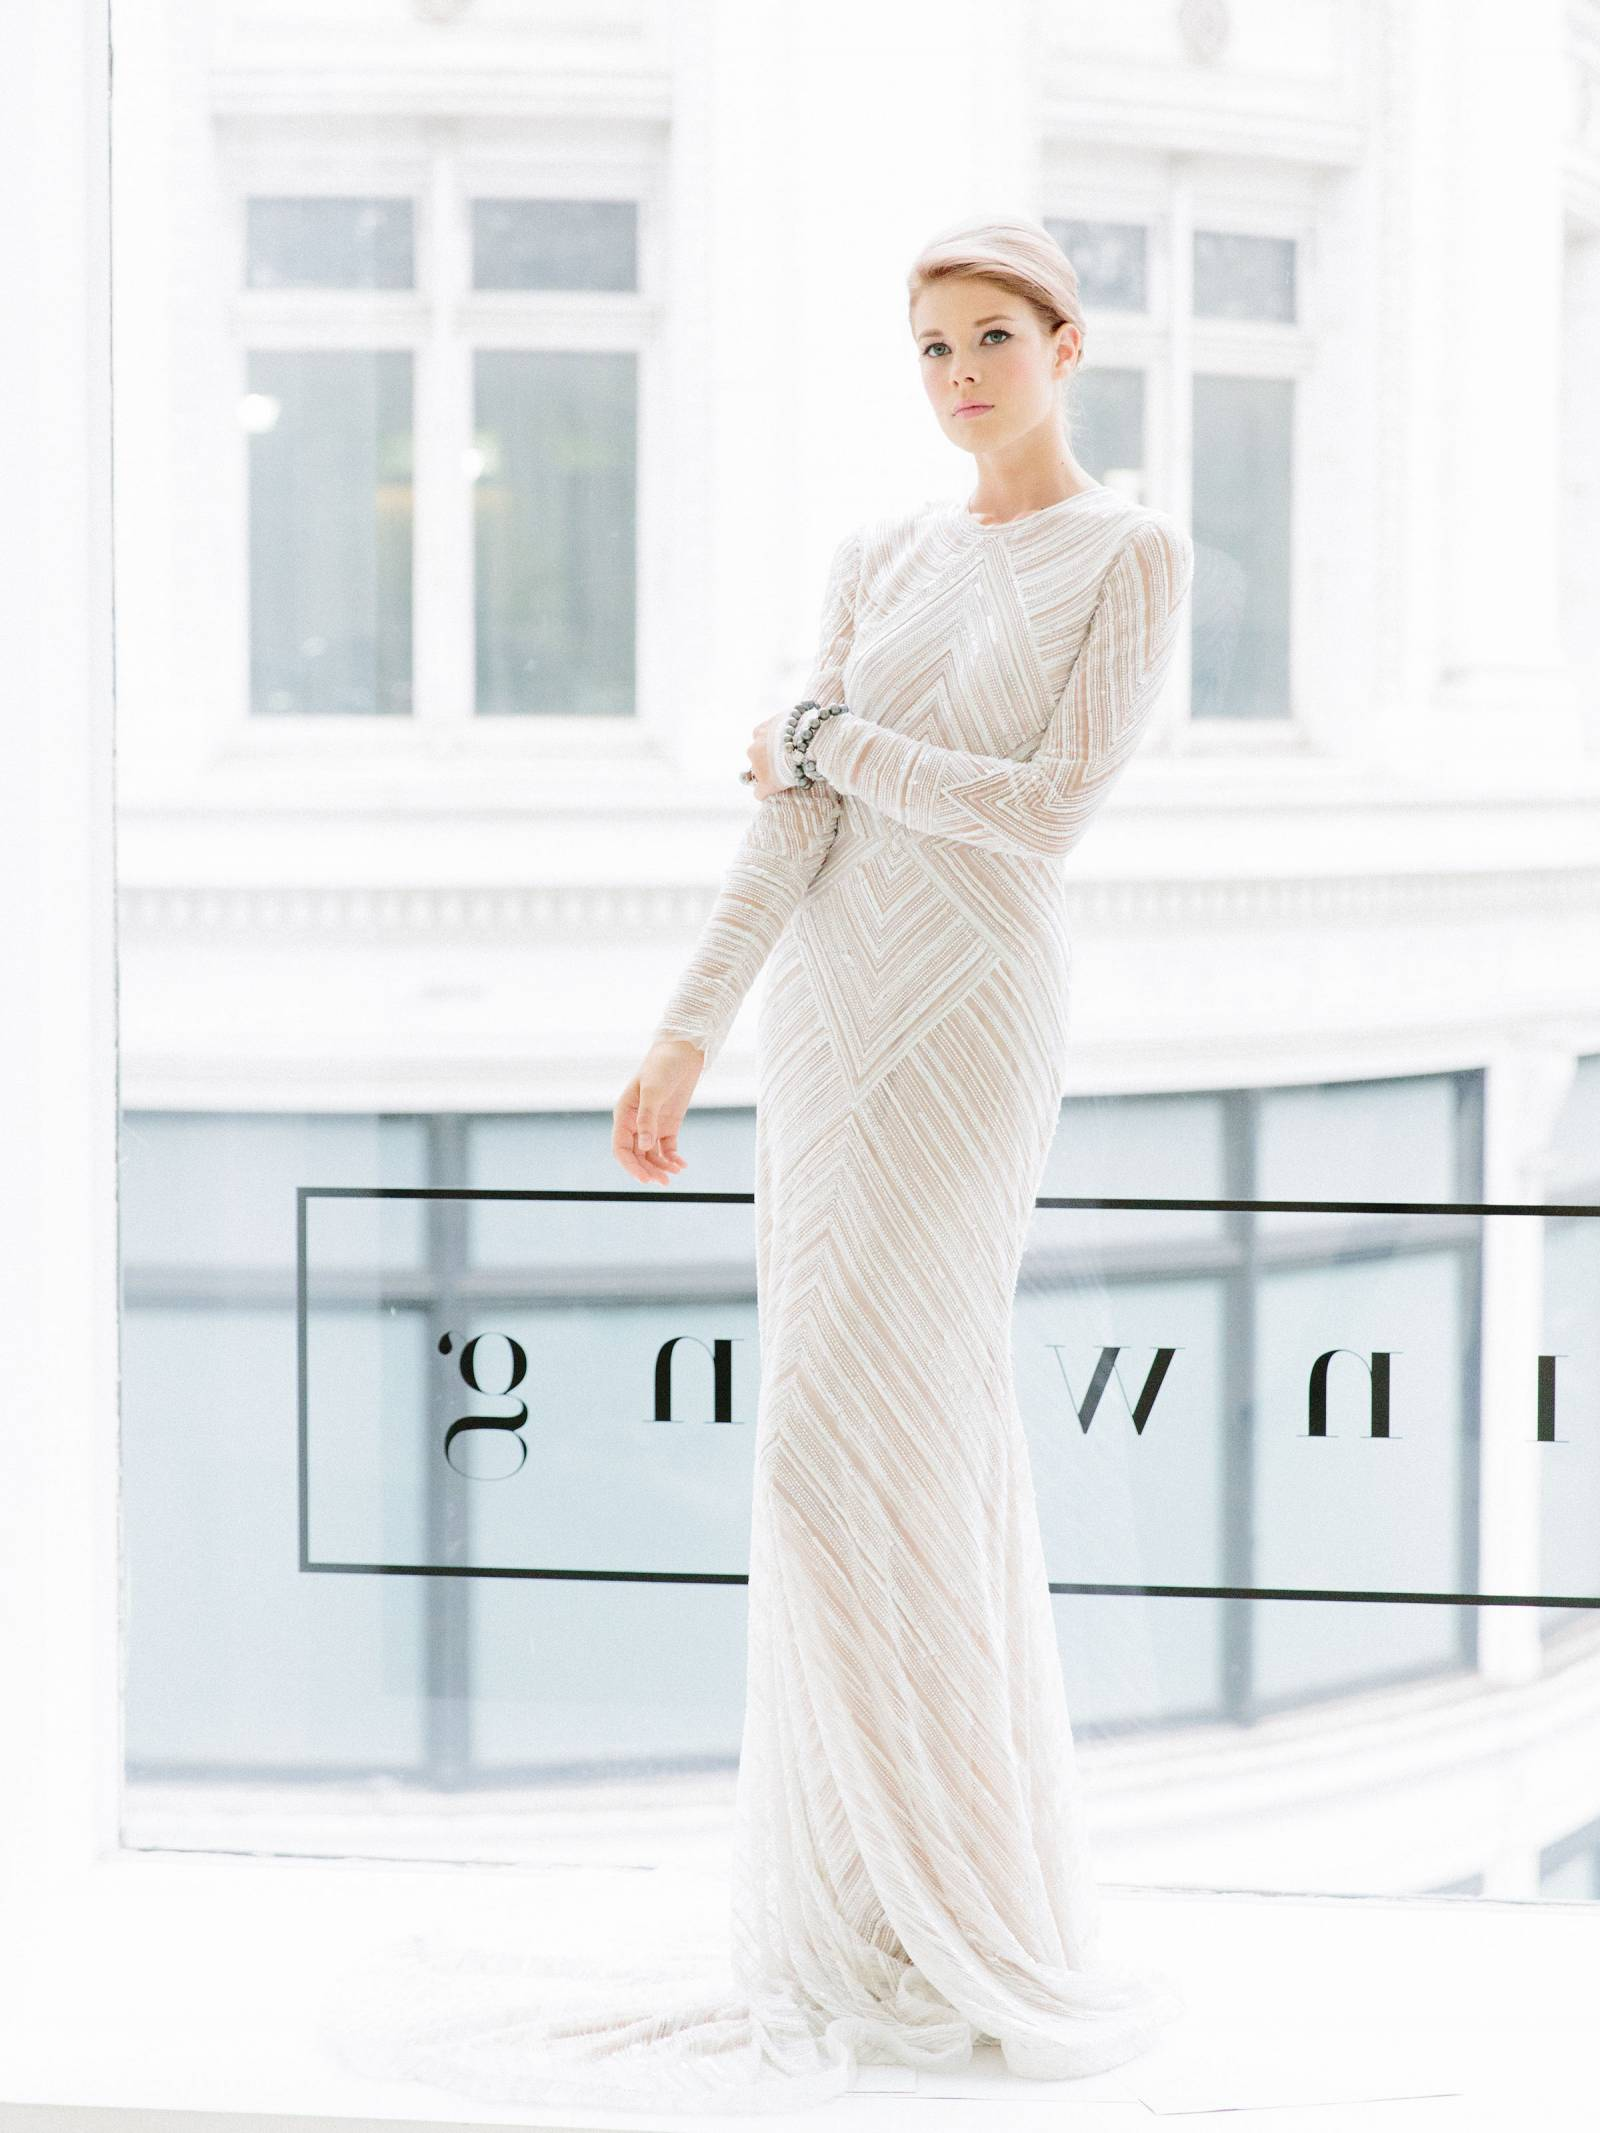 Sexy high necked, long sleeved Naeem Kahn wedding gown from Jinwang